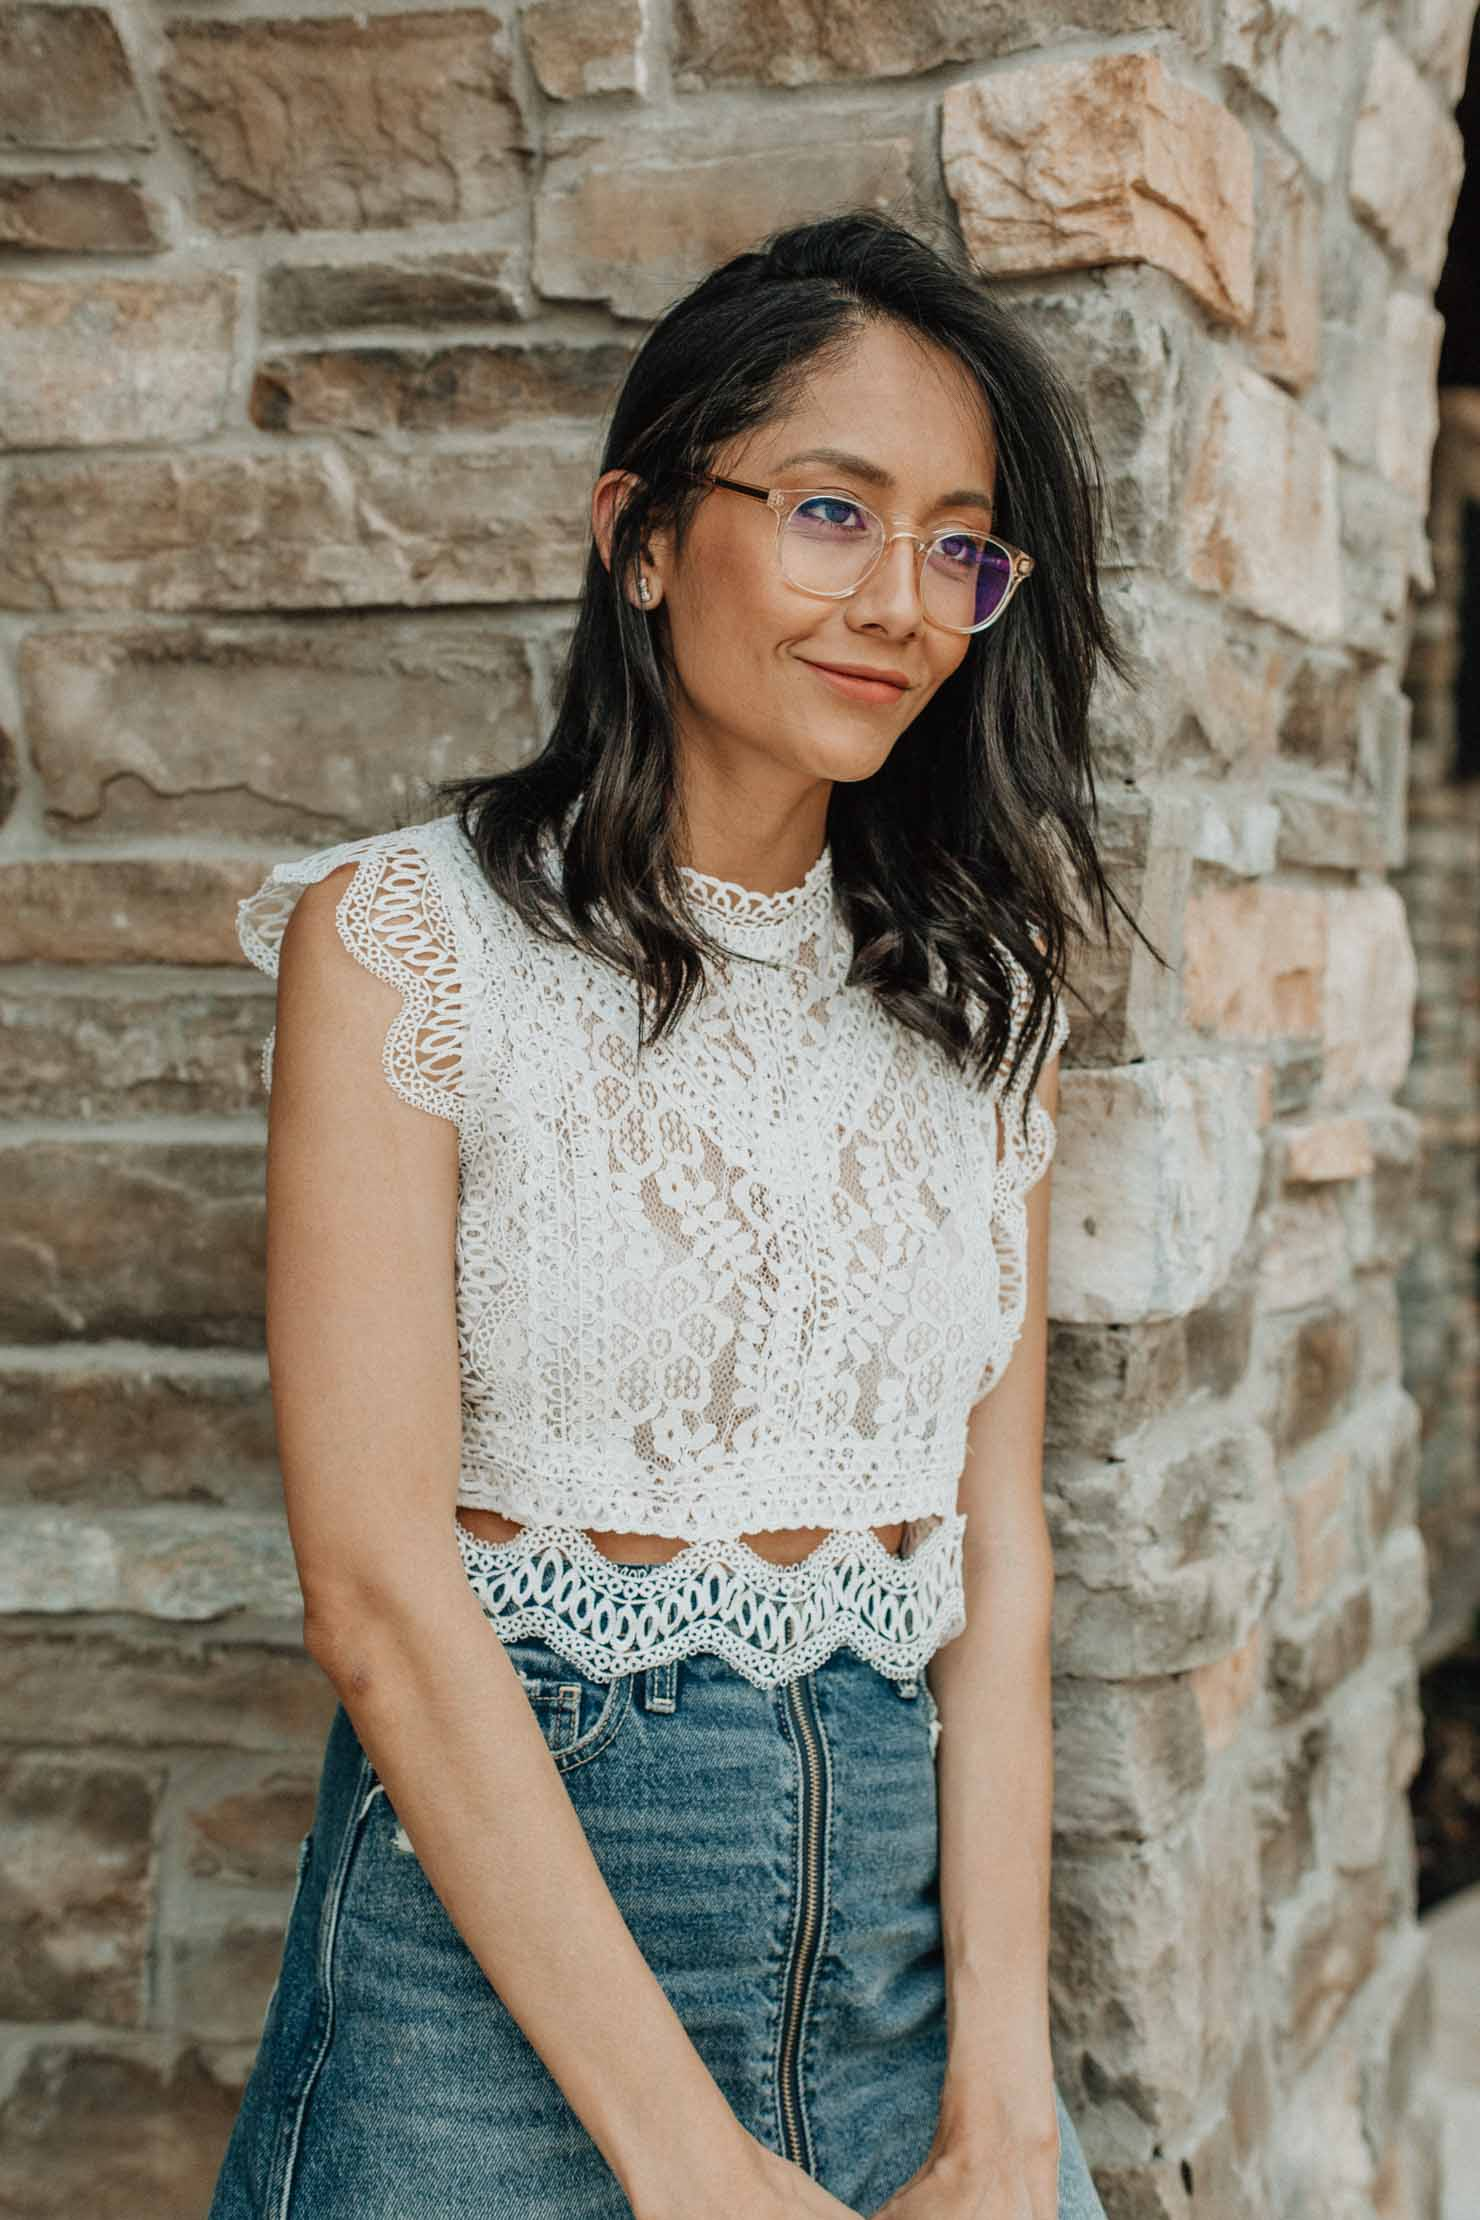 Accessorizing summer looks with eyewear from coastal.com |Lilly Beltran, Houston fashion blogger